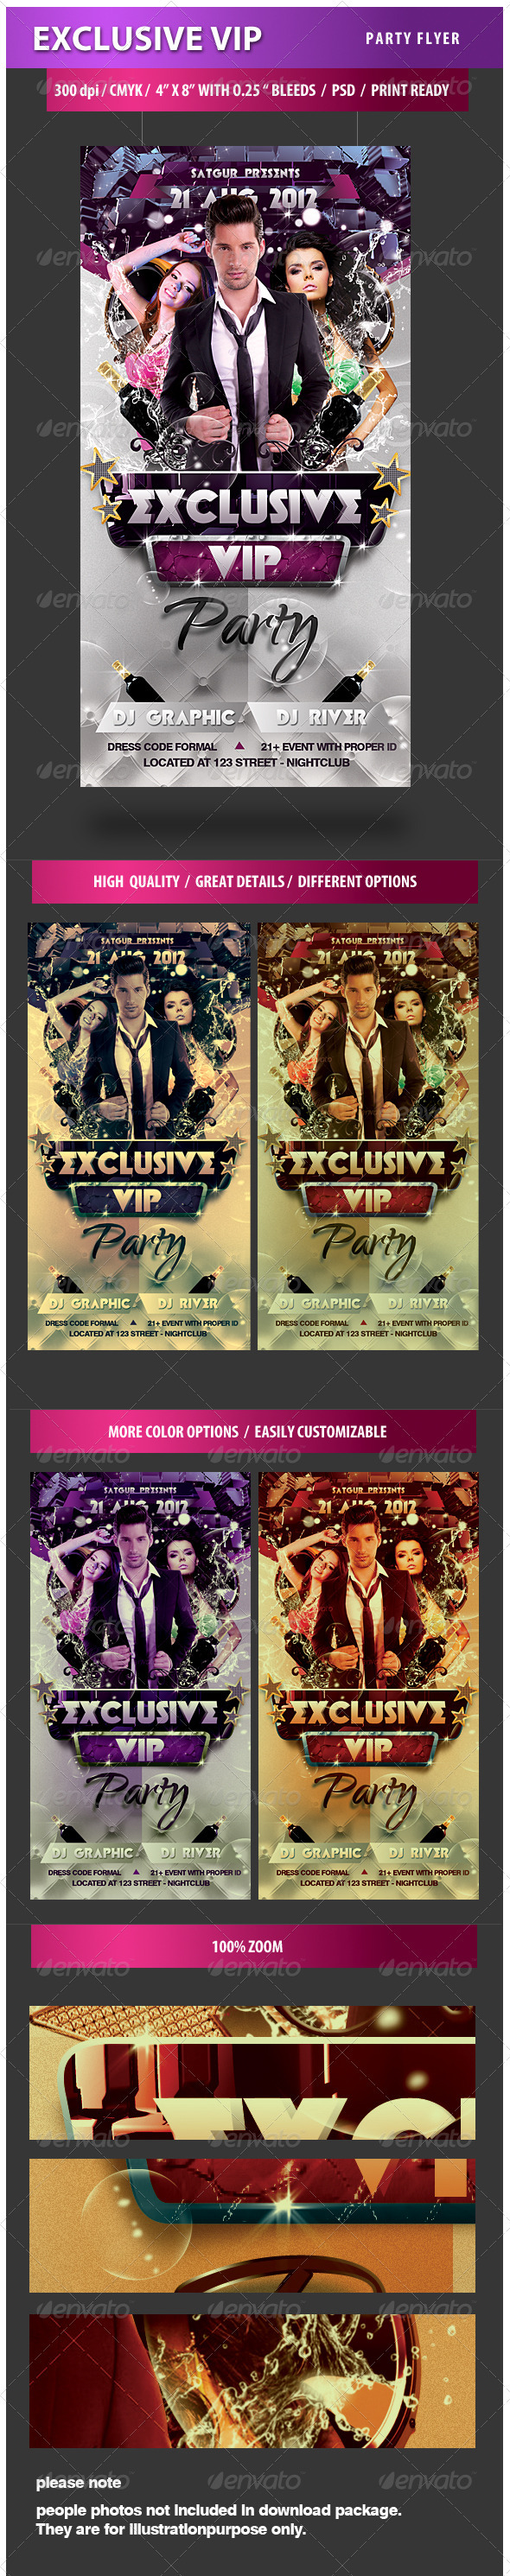 Exclusive VIP Party Flyer - Clubs & Parties Events